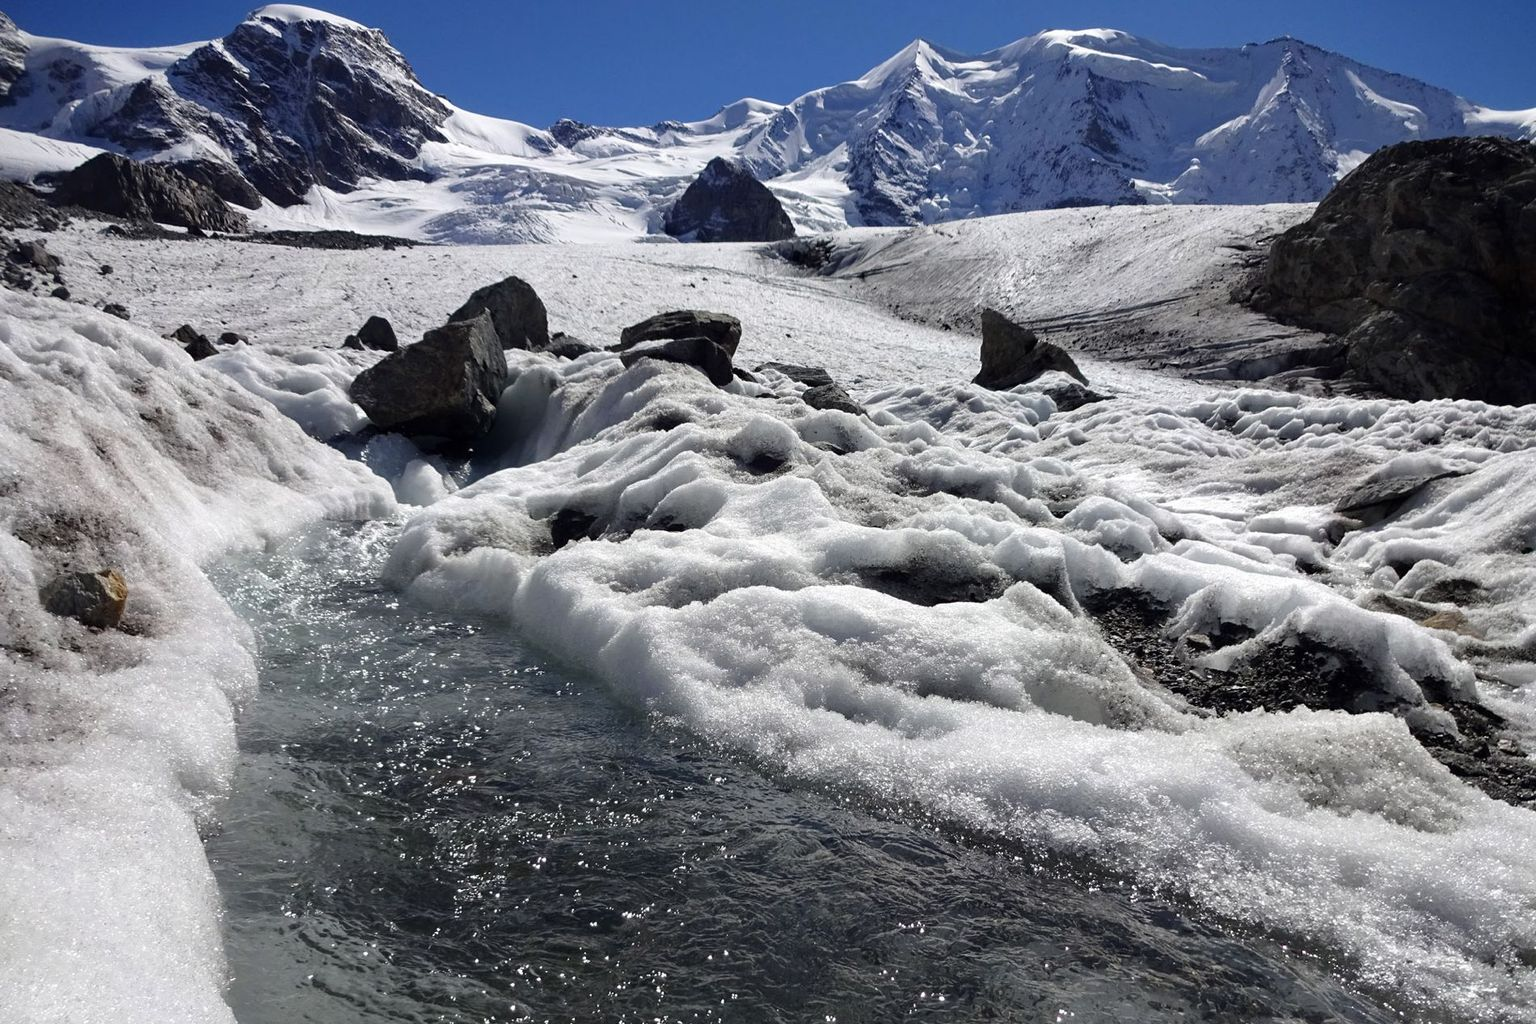 Meltwater streams on the Pers Glacier (GR). The summit regions are shining white as early as September due to fresh snow.